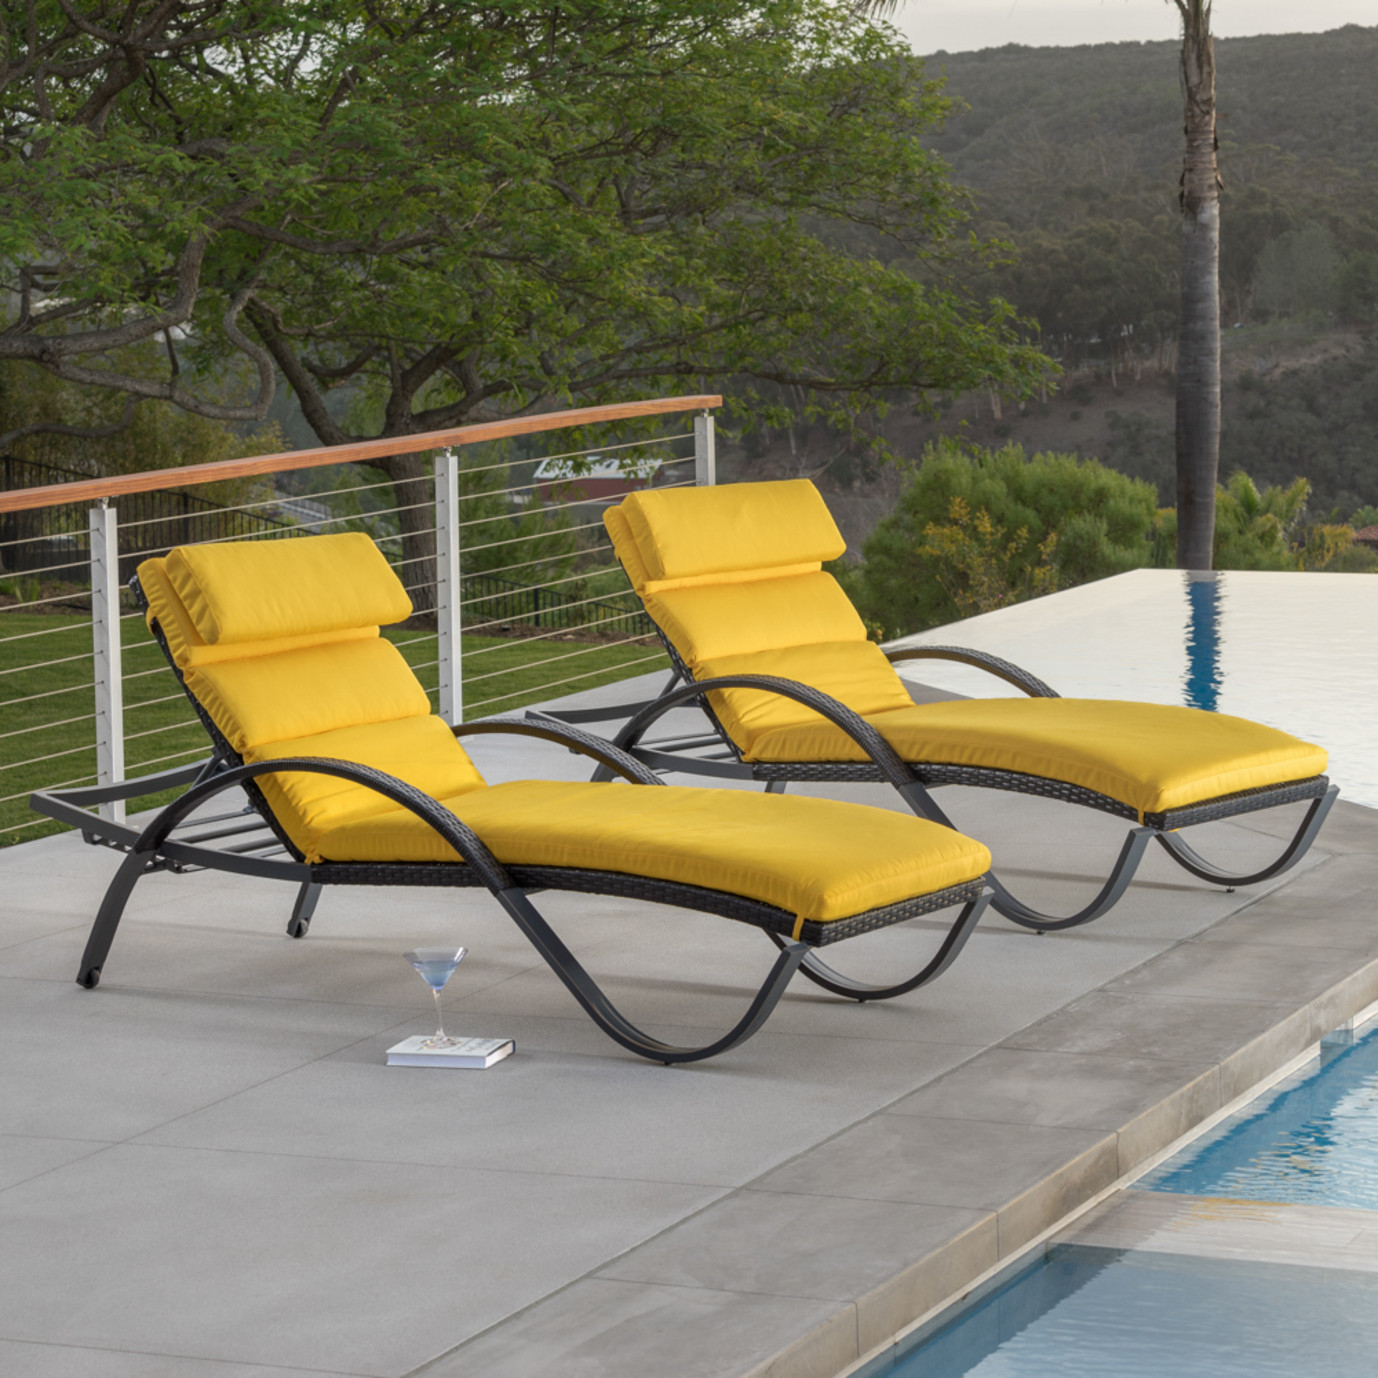 Deco™ Chaise Lounges with Cushions - Sunflower Yellow